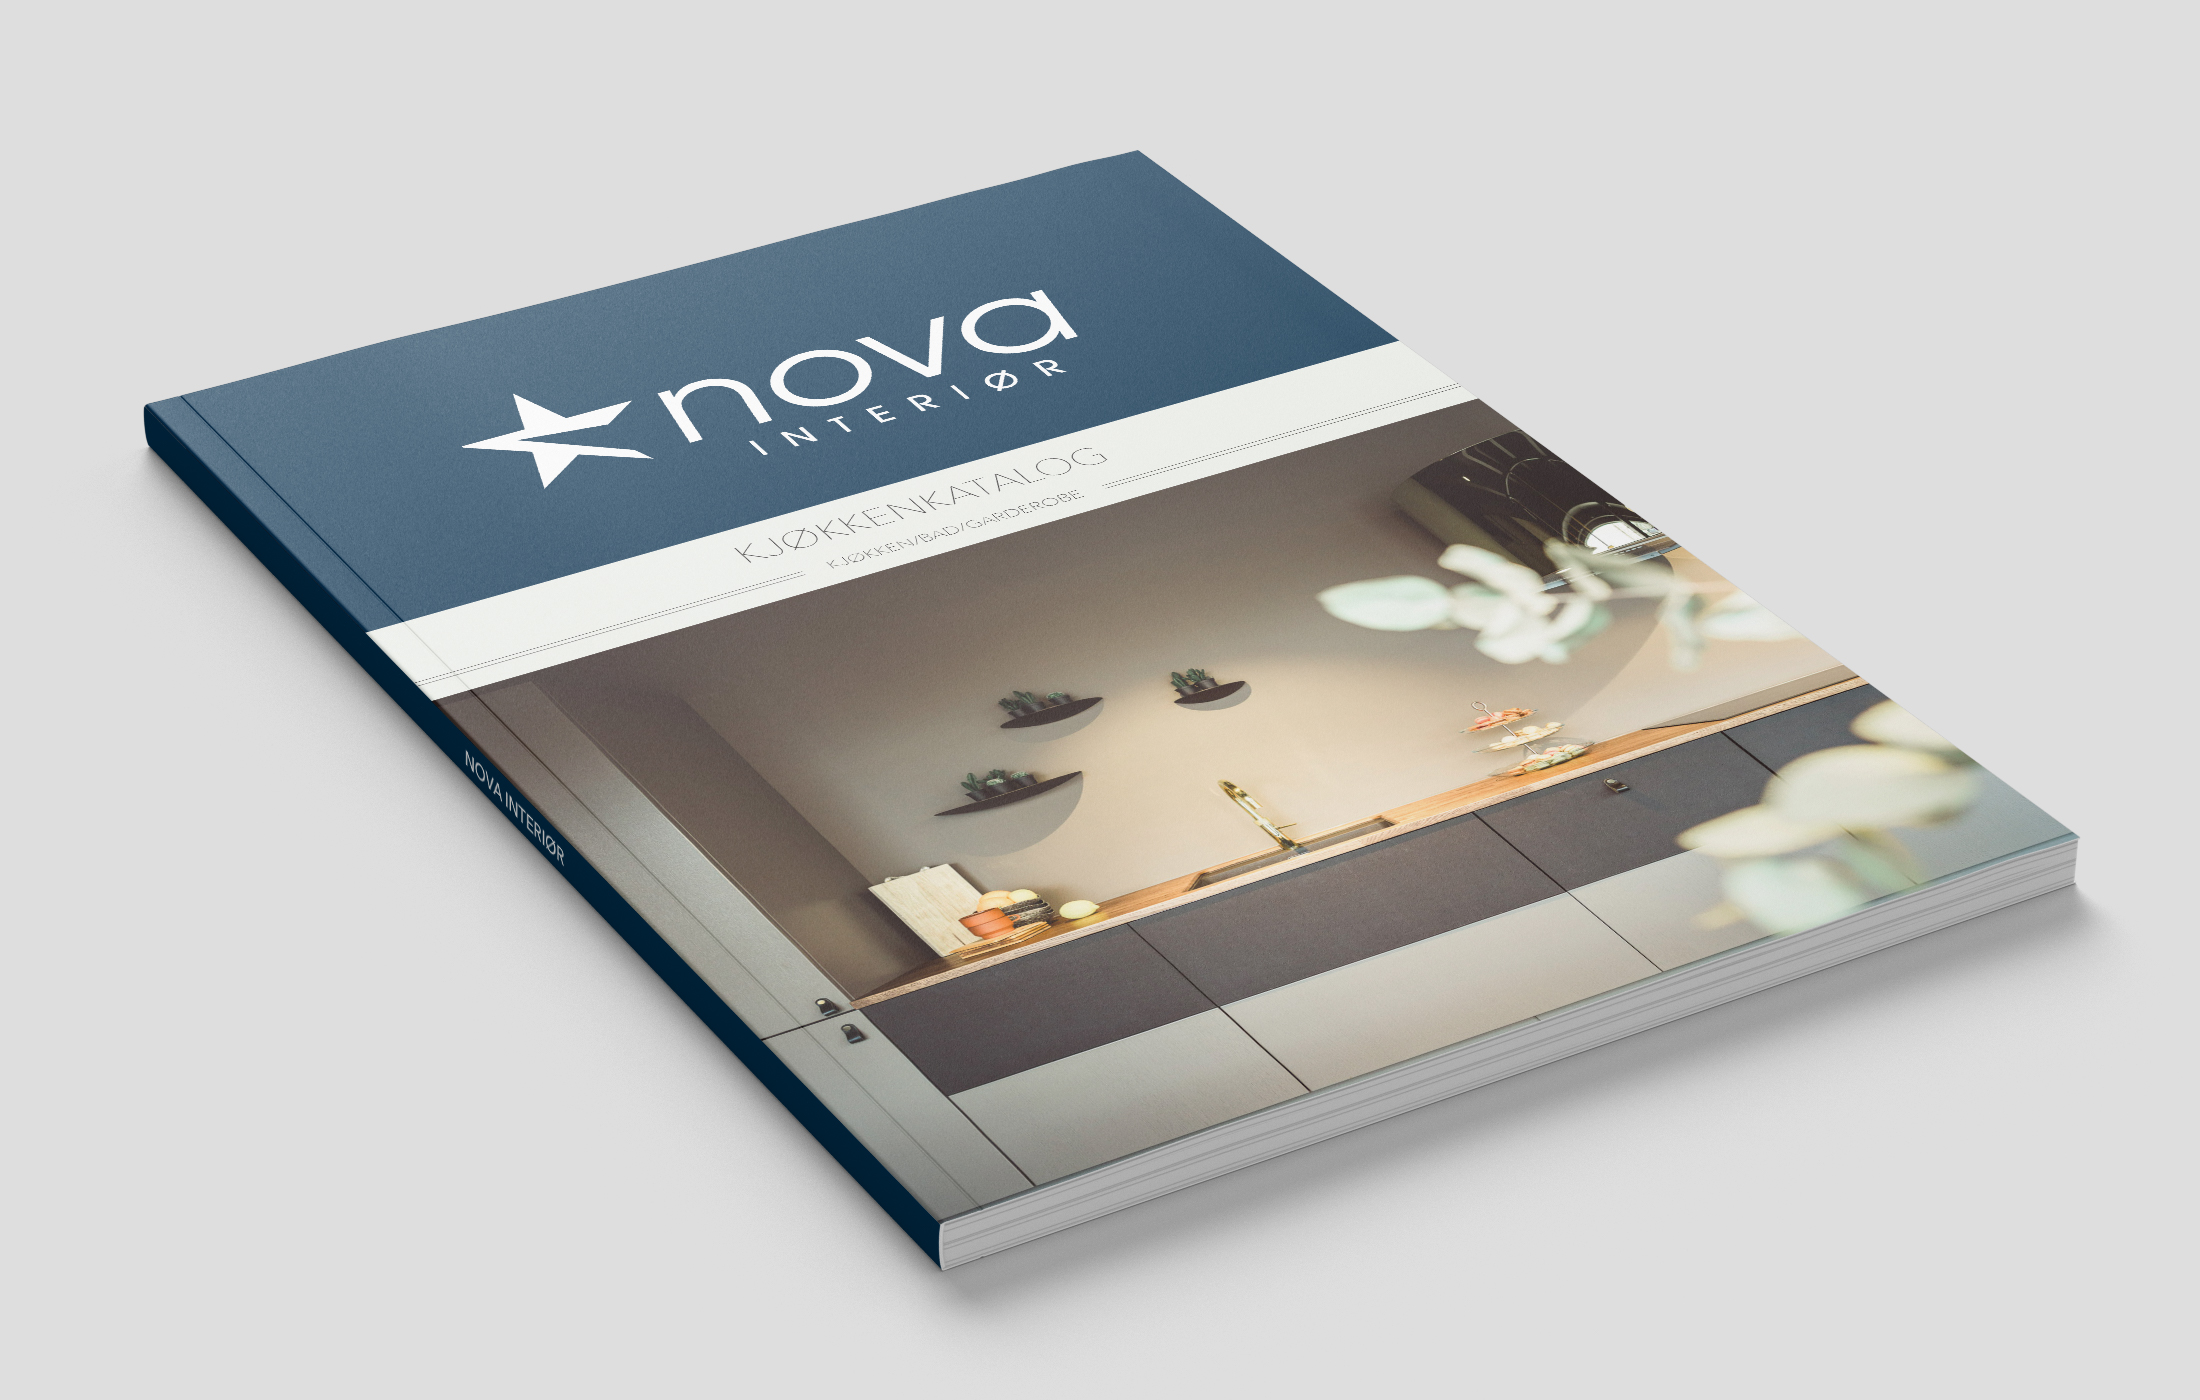 The nova catalog showed as a mockup